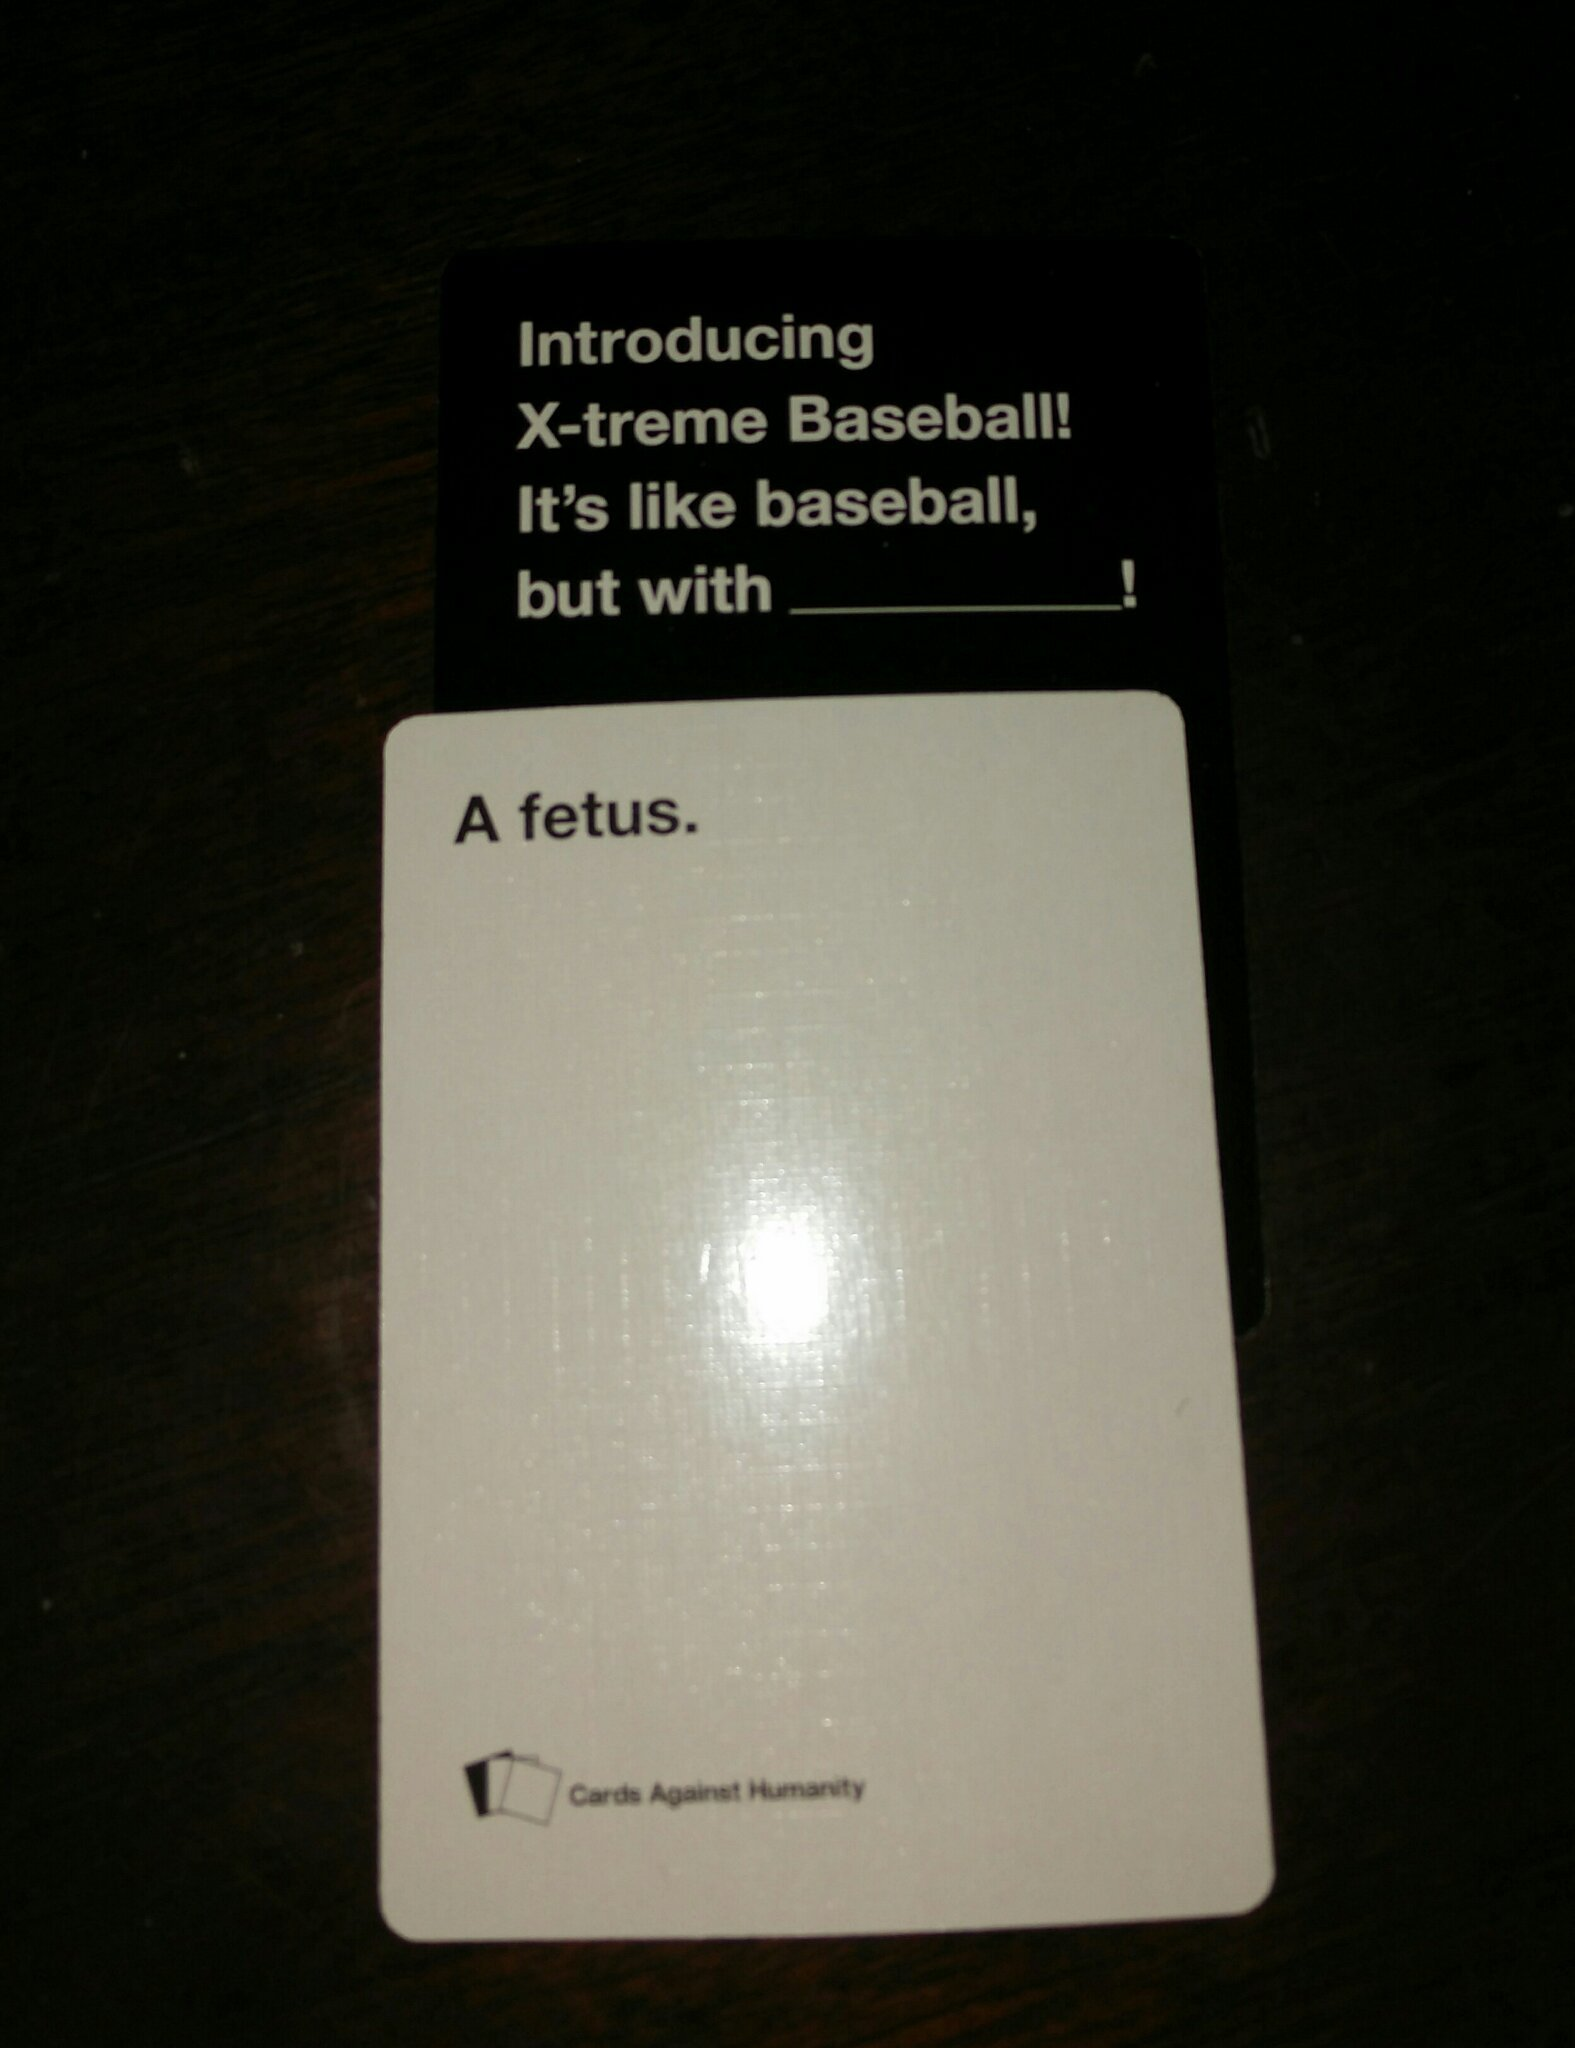 cards against humanity is hilarious - meme